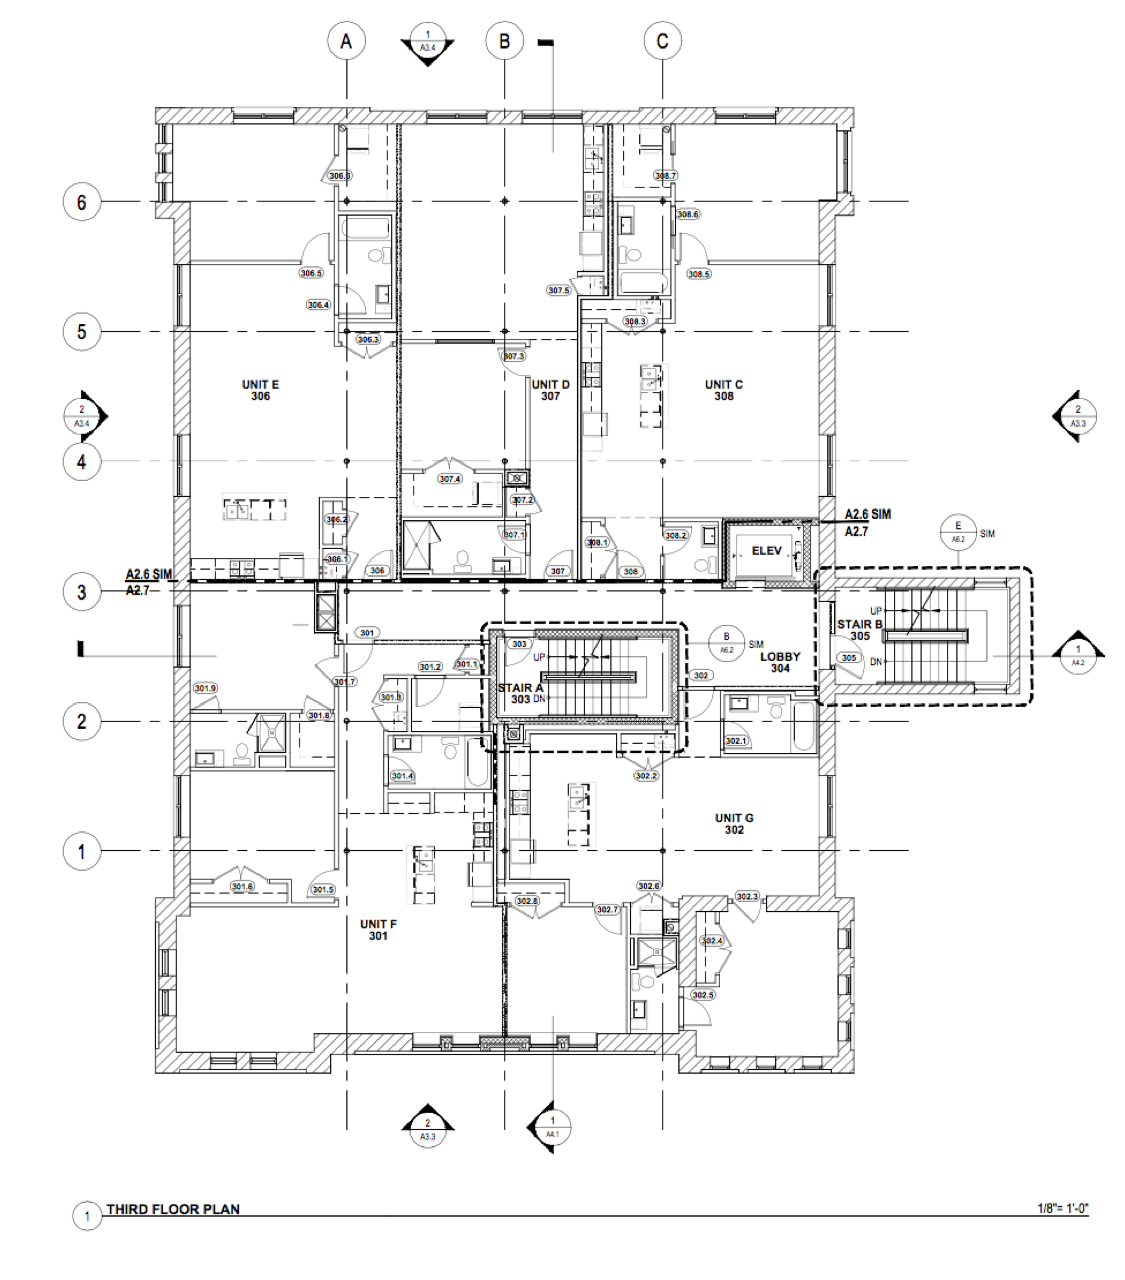 Typical floor plan Provided for illustrative purposes only courtesy of Antonio Manaigo